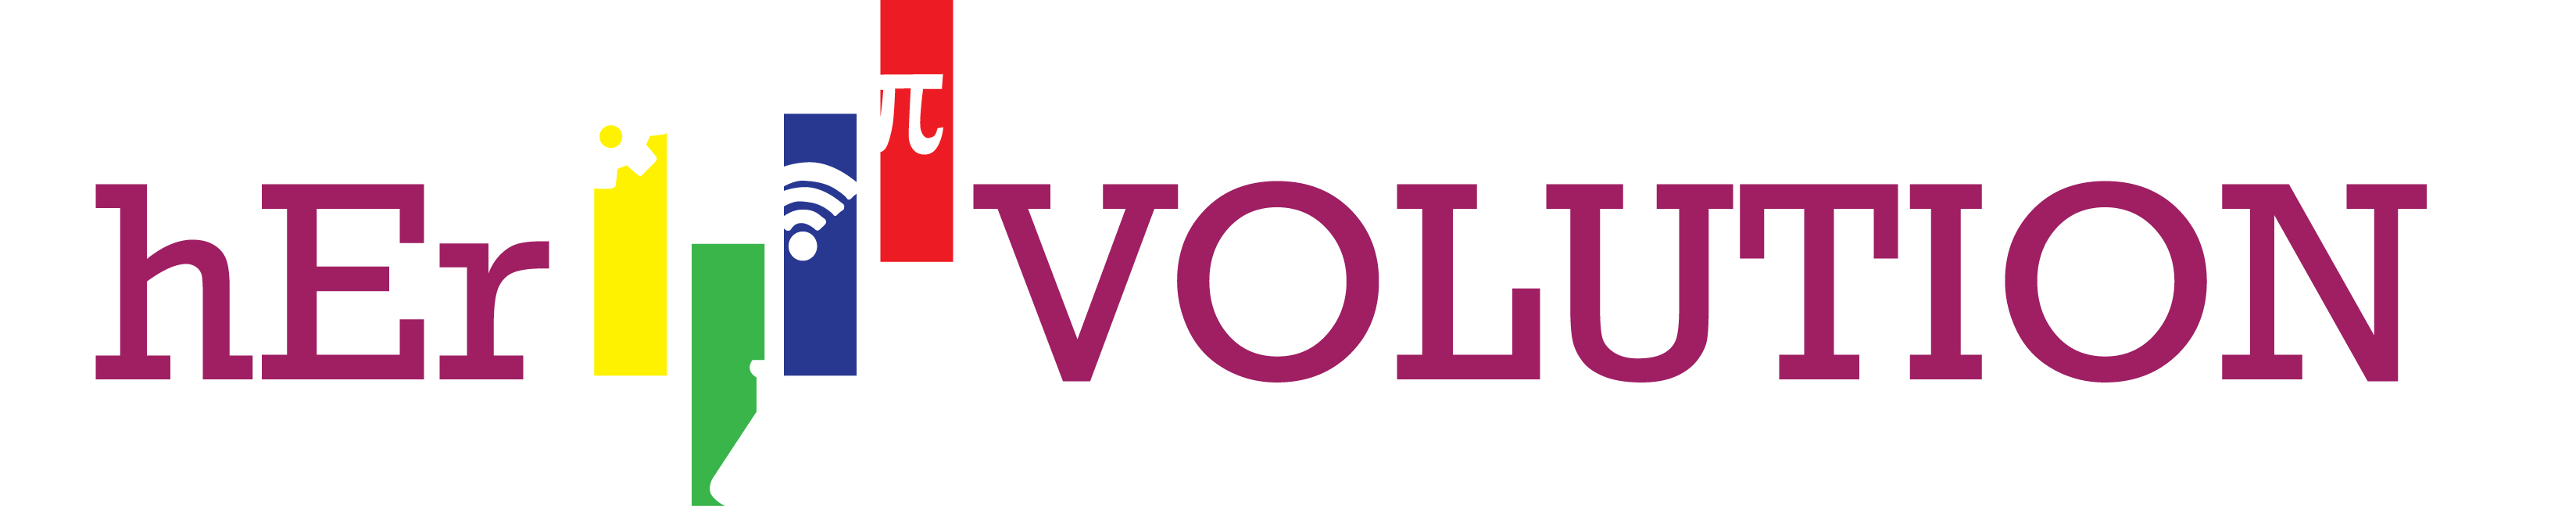 Make a difference! #Volunter Opportunity Notification for @hEr VOLUTION